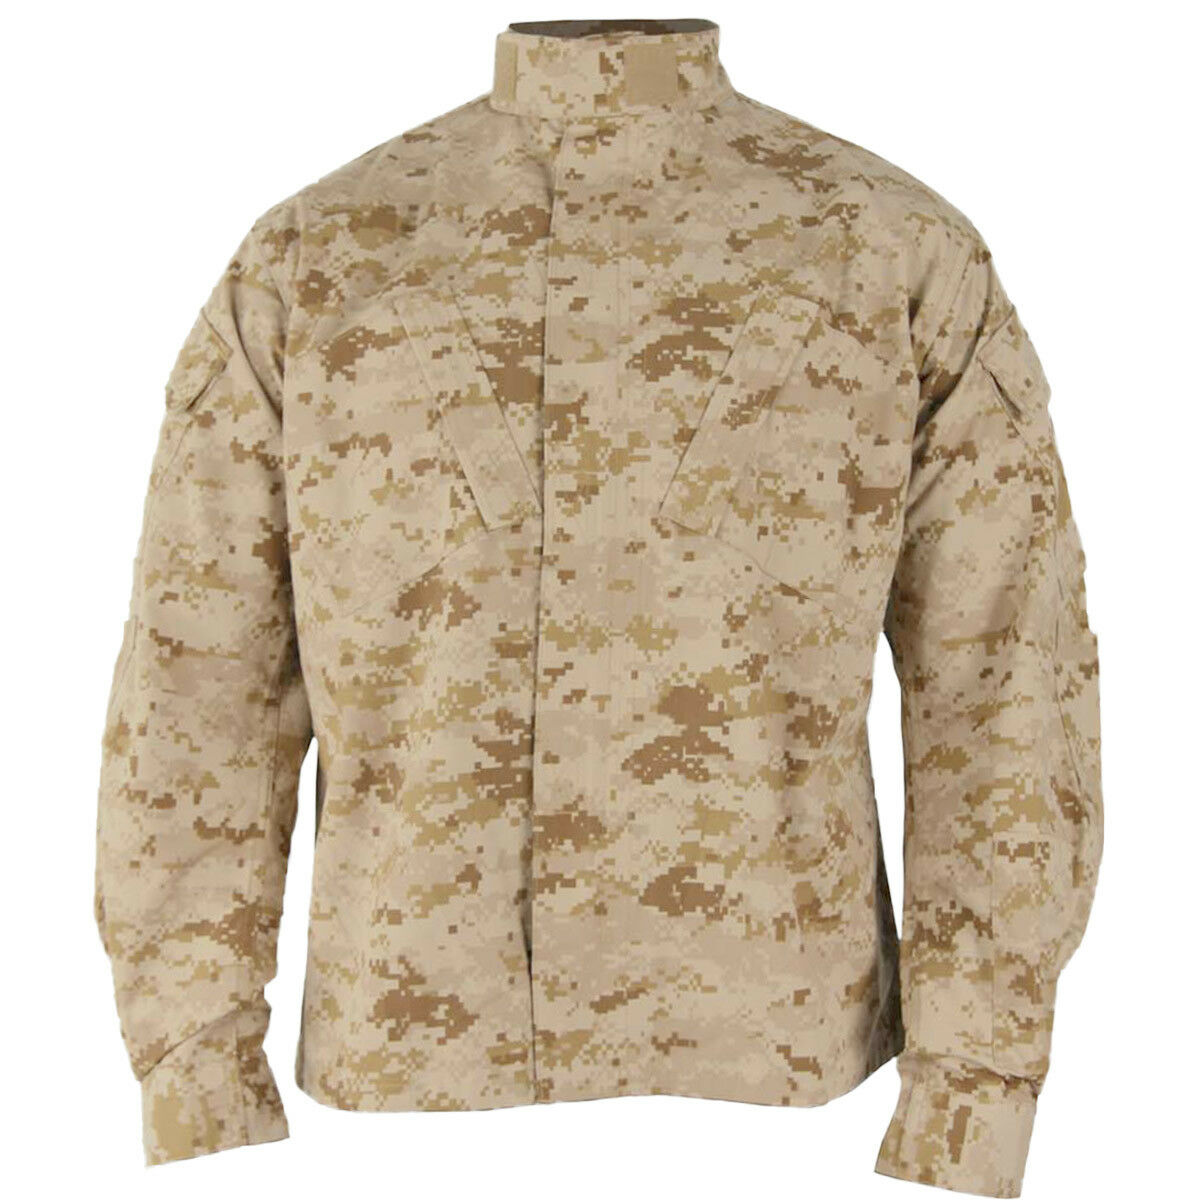 Propper ACU Coat Mens Military Uniform Cadet Tactical Shirt Digital Desert Camo